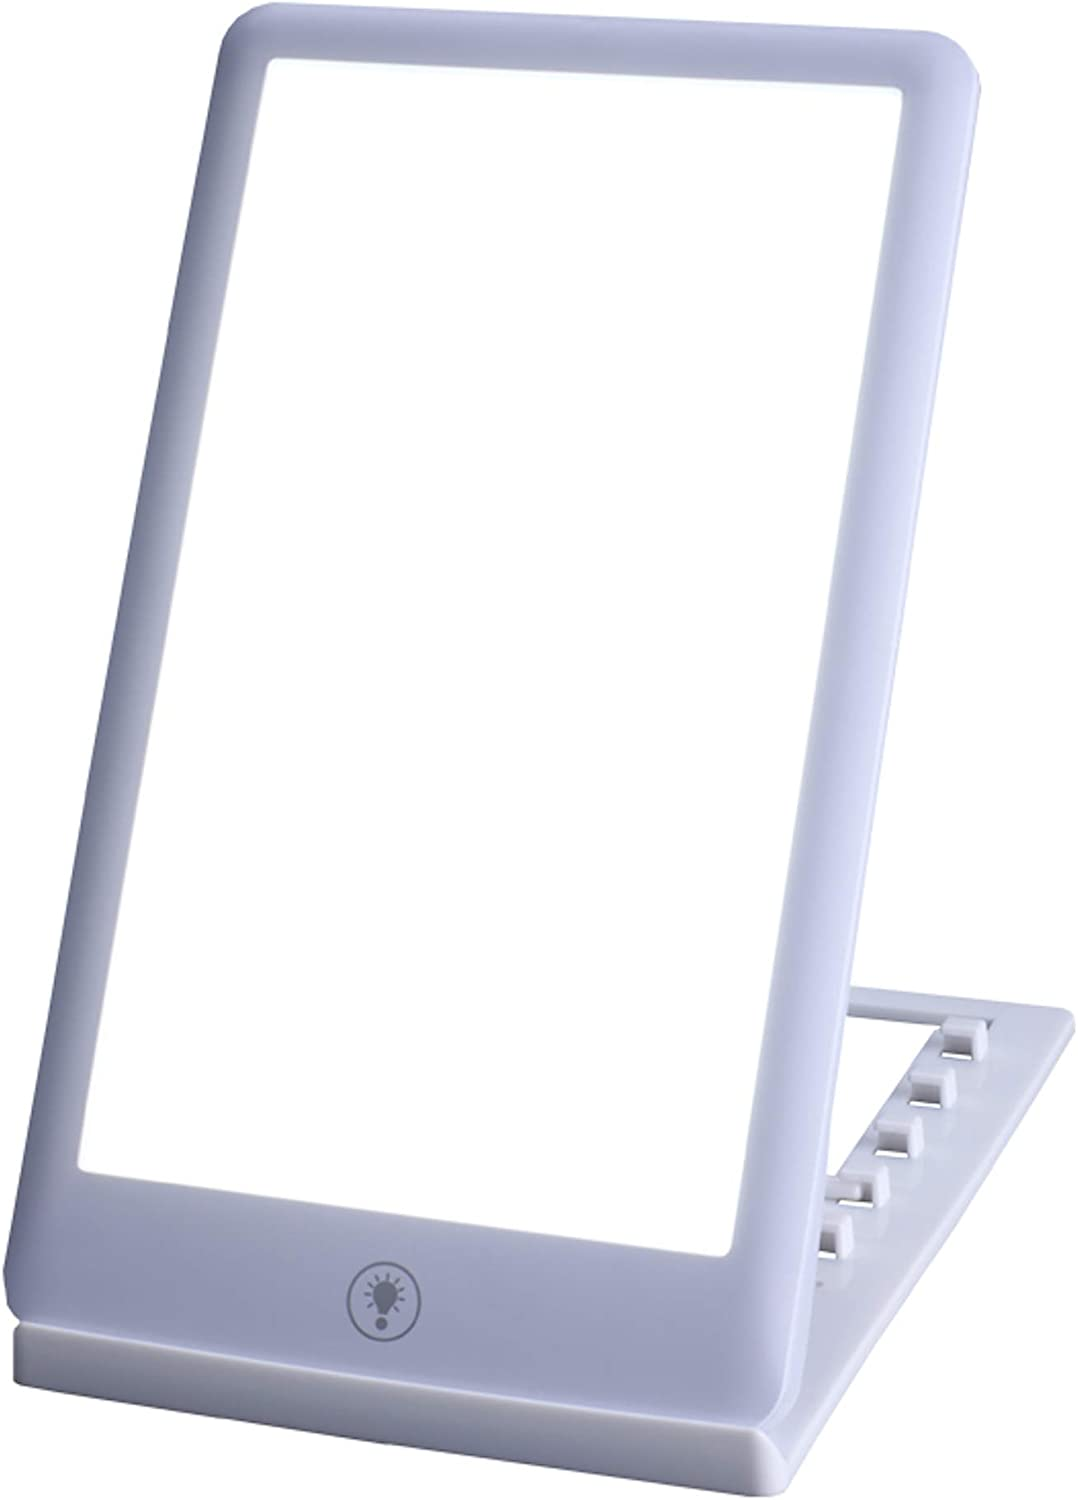 Light Therapy Lamp Box Device by MediRevive -30,000 Lux Ultra Bright Full-Spectrum White LED Lights